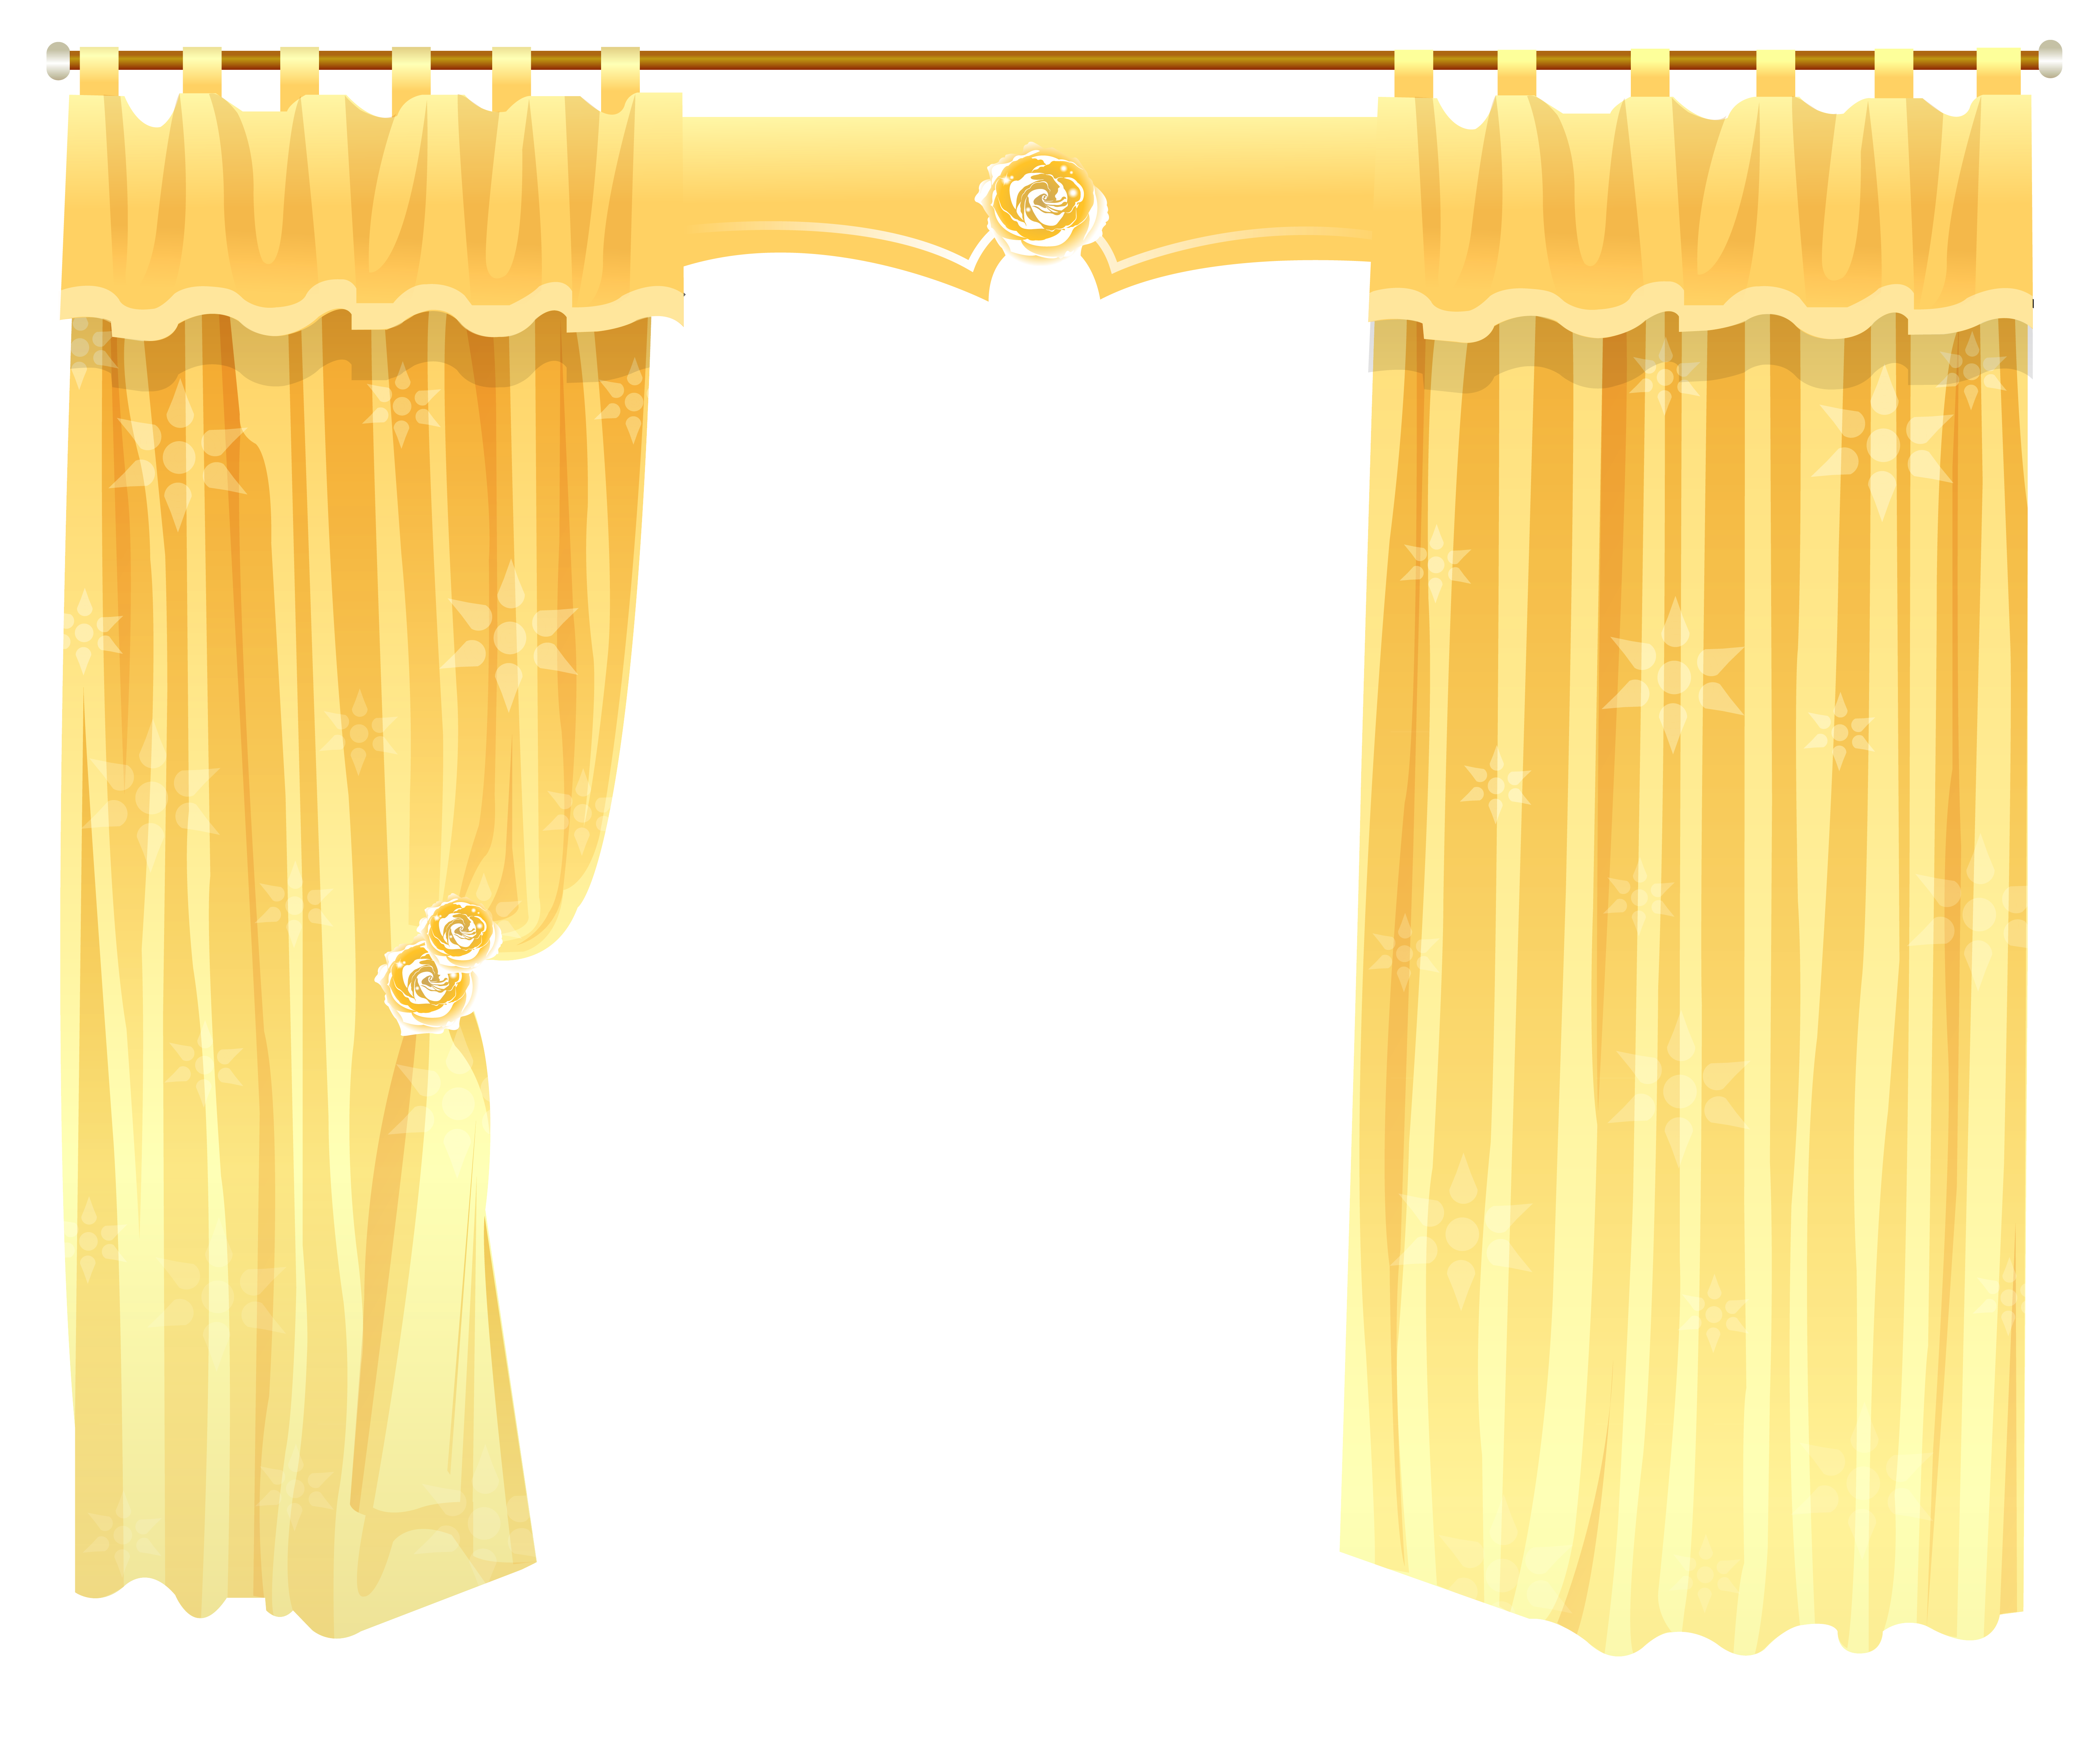 Curtain clipart transparent Gallery Transparent Yopriceville PNG Clipart